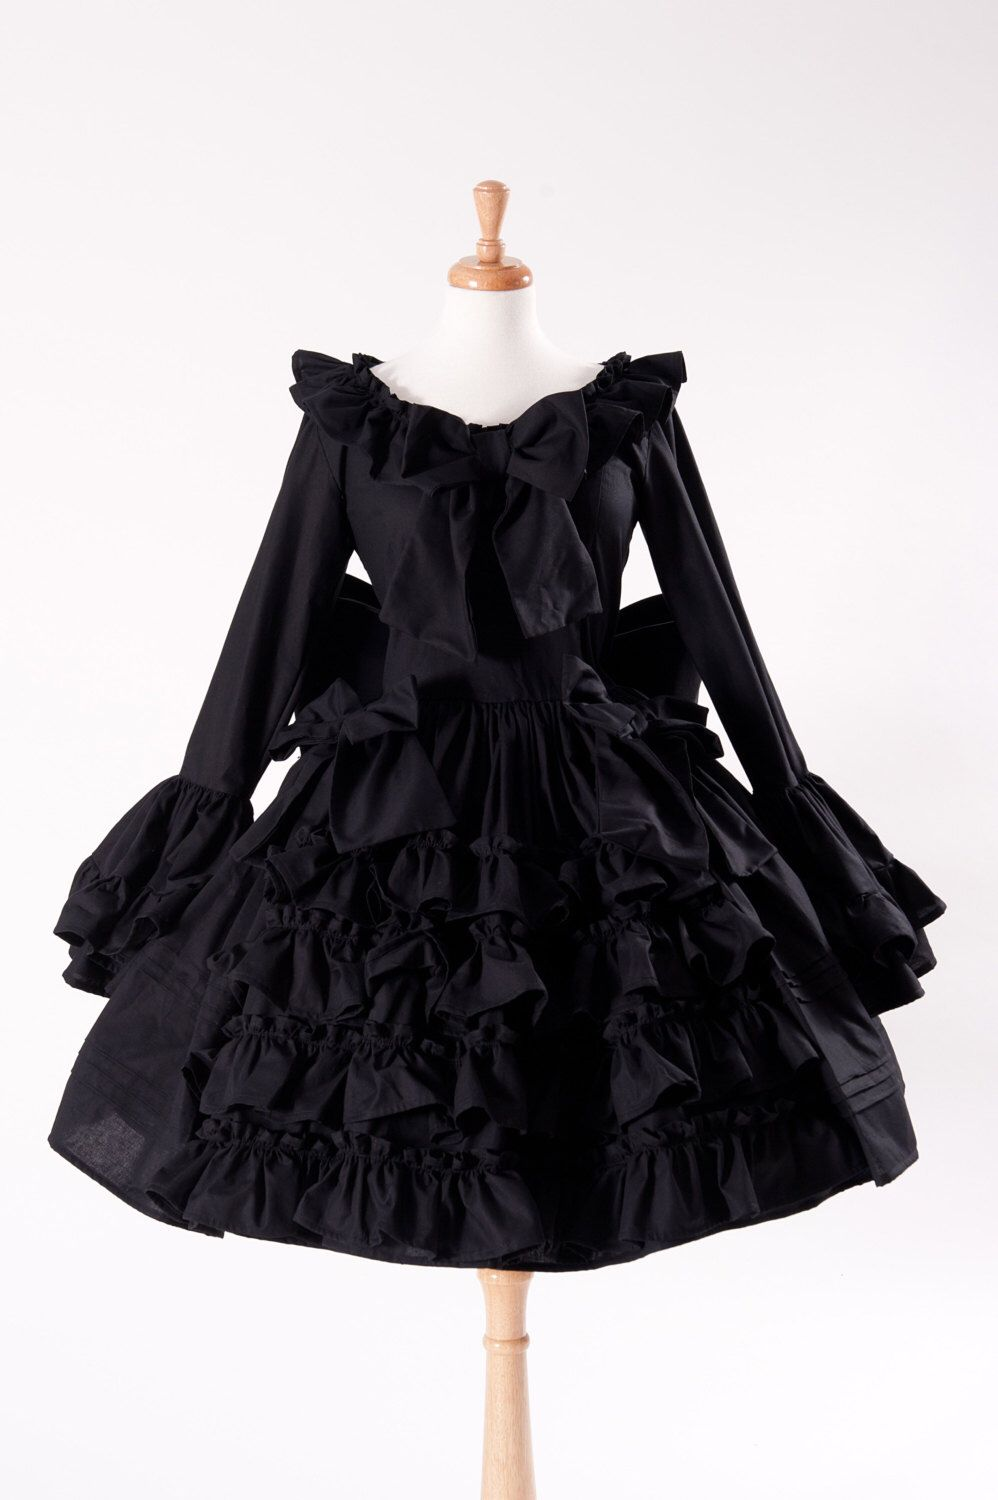 Black Gothic Lolita Goth Loli Cotton Dress and Detachable Bow Cosplay  Custom Size including Plus Size